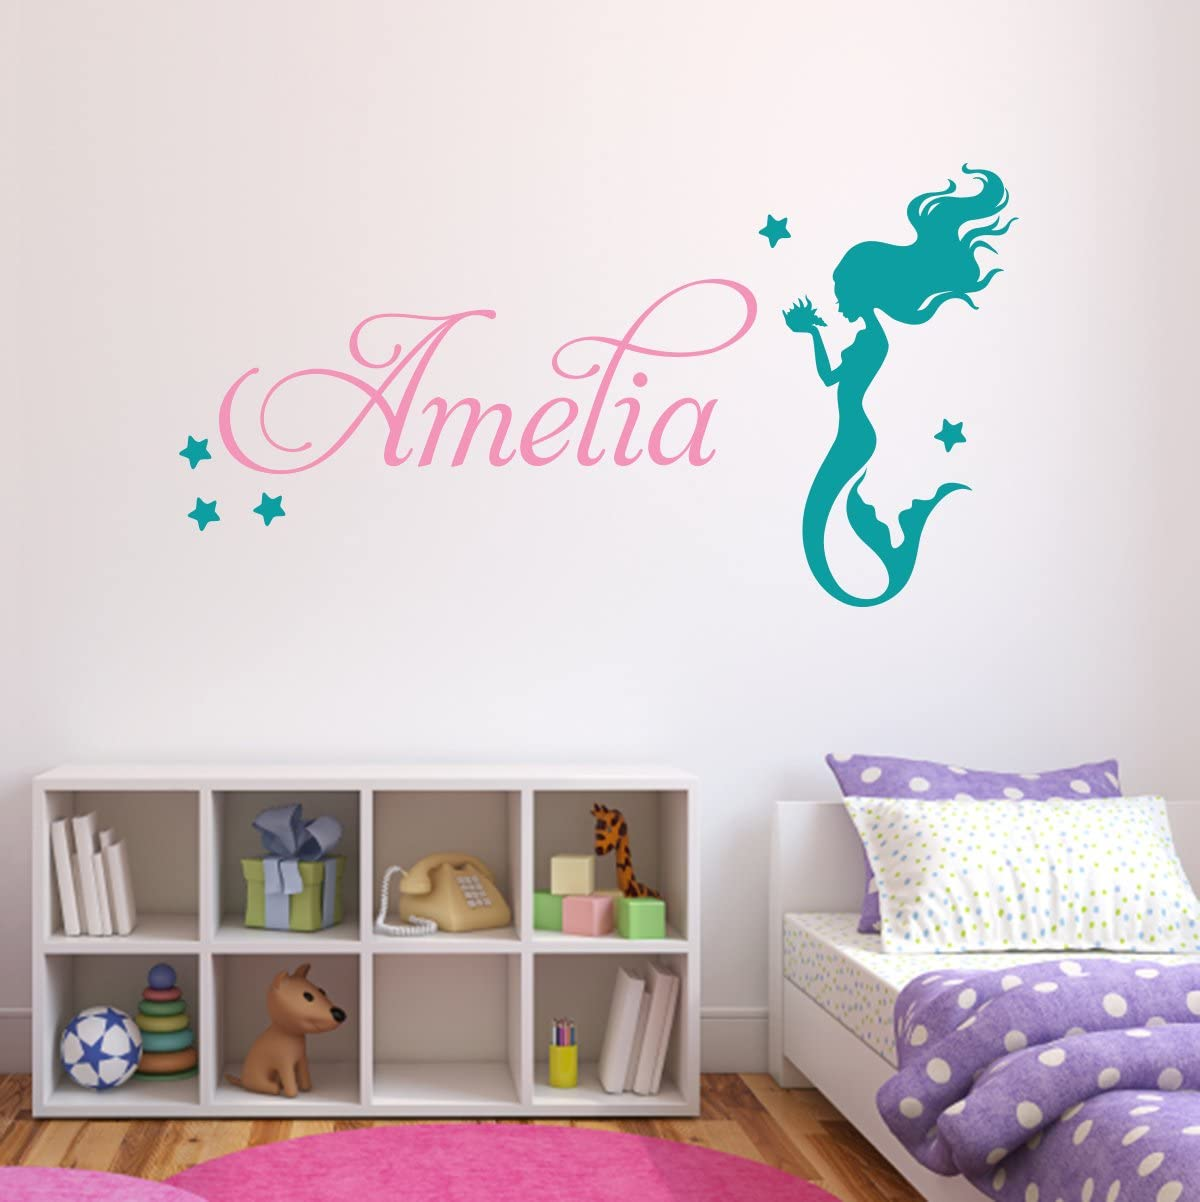 """Lovely Decals World LLC Personalized Mermaid Name Wall Decal Nursery Baby Room Mural Art Decor Vinyl Sticker LD10 (18"""" W x 10"""" H)"""